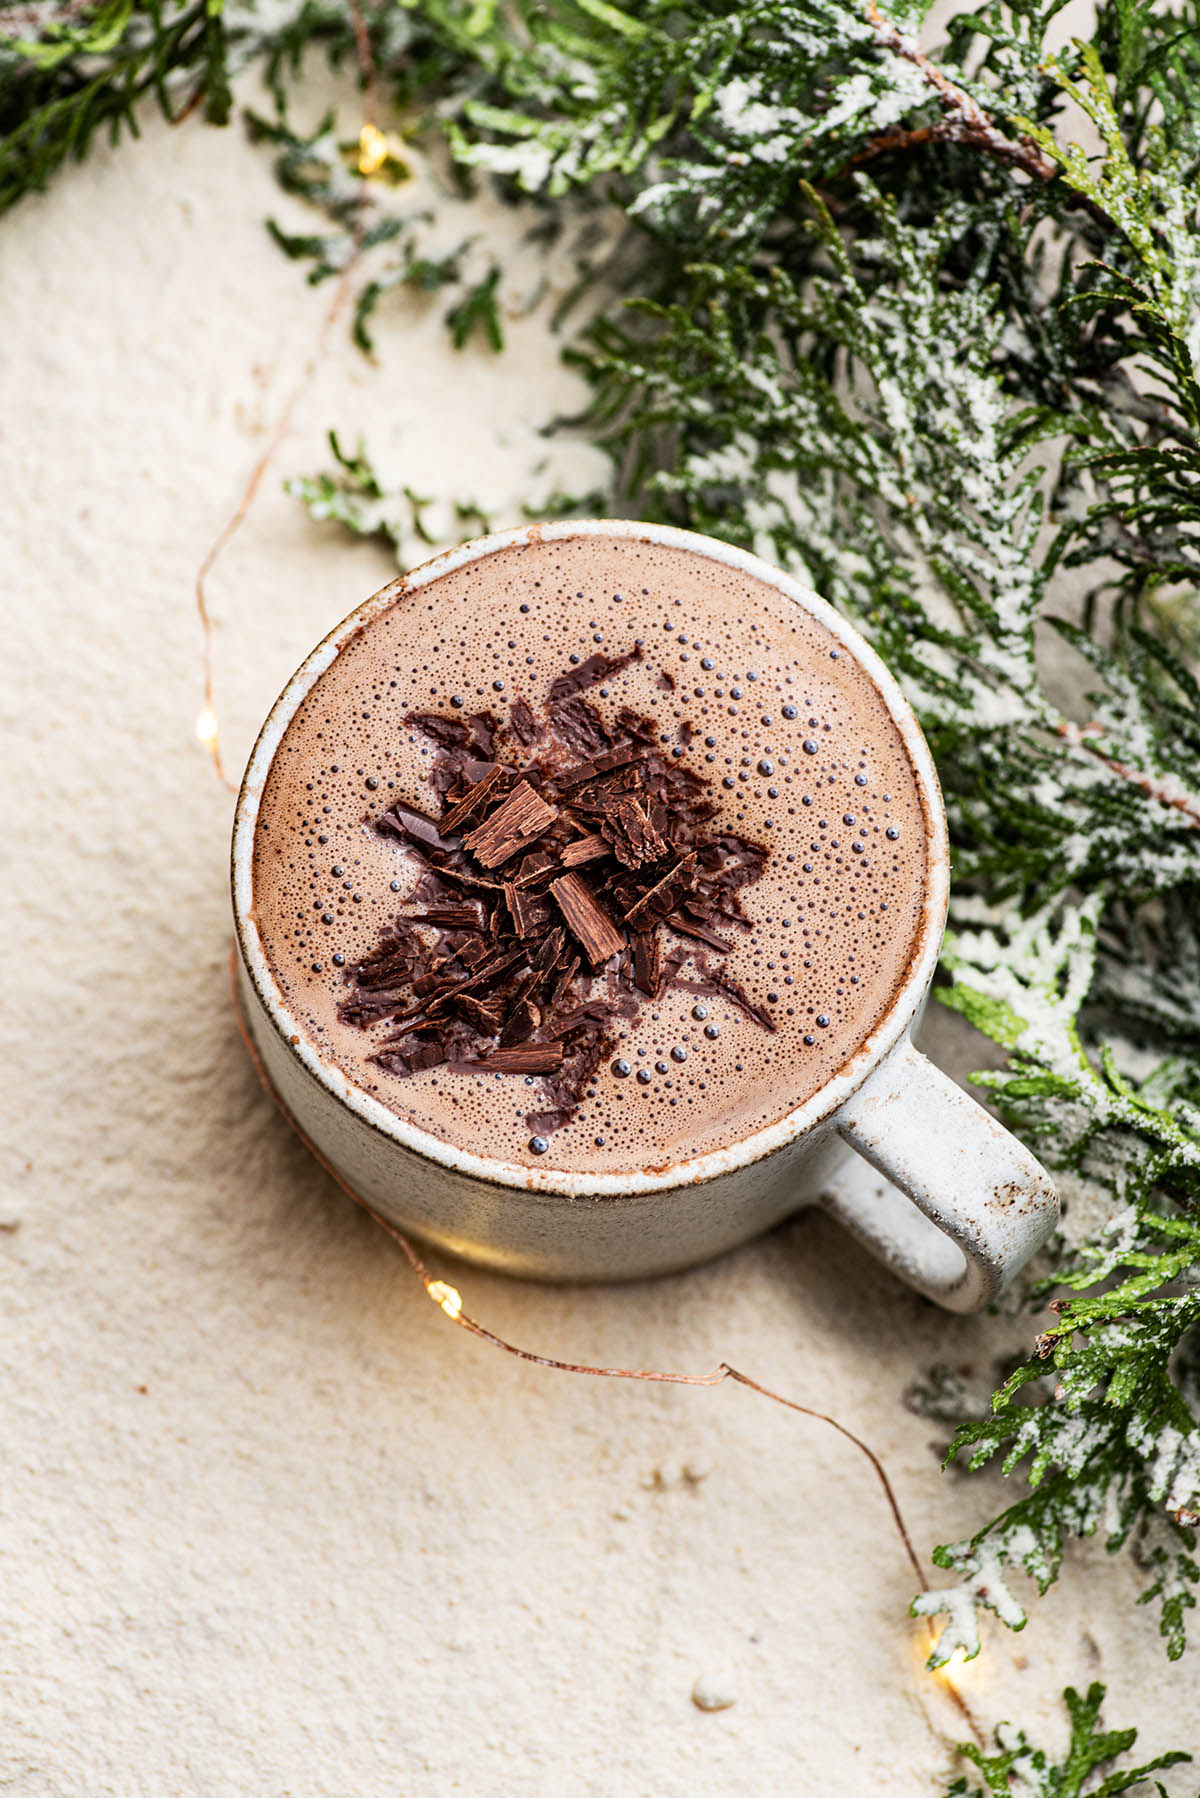 A mug of hot chocolate topped with shaved dark chocolate.